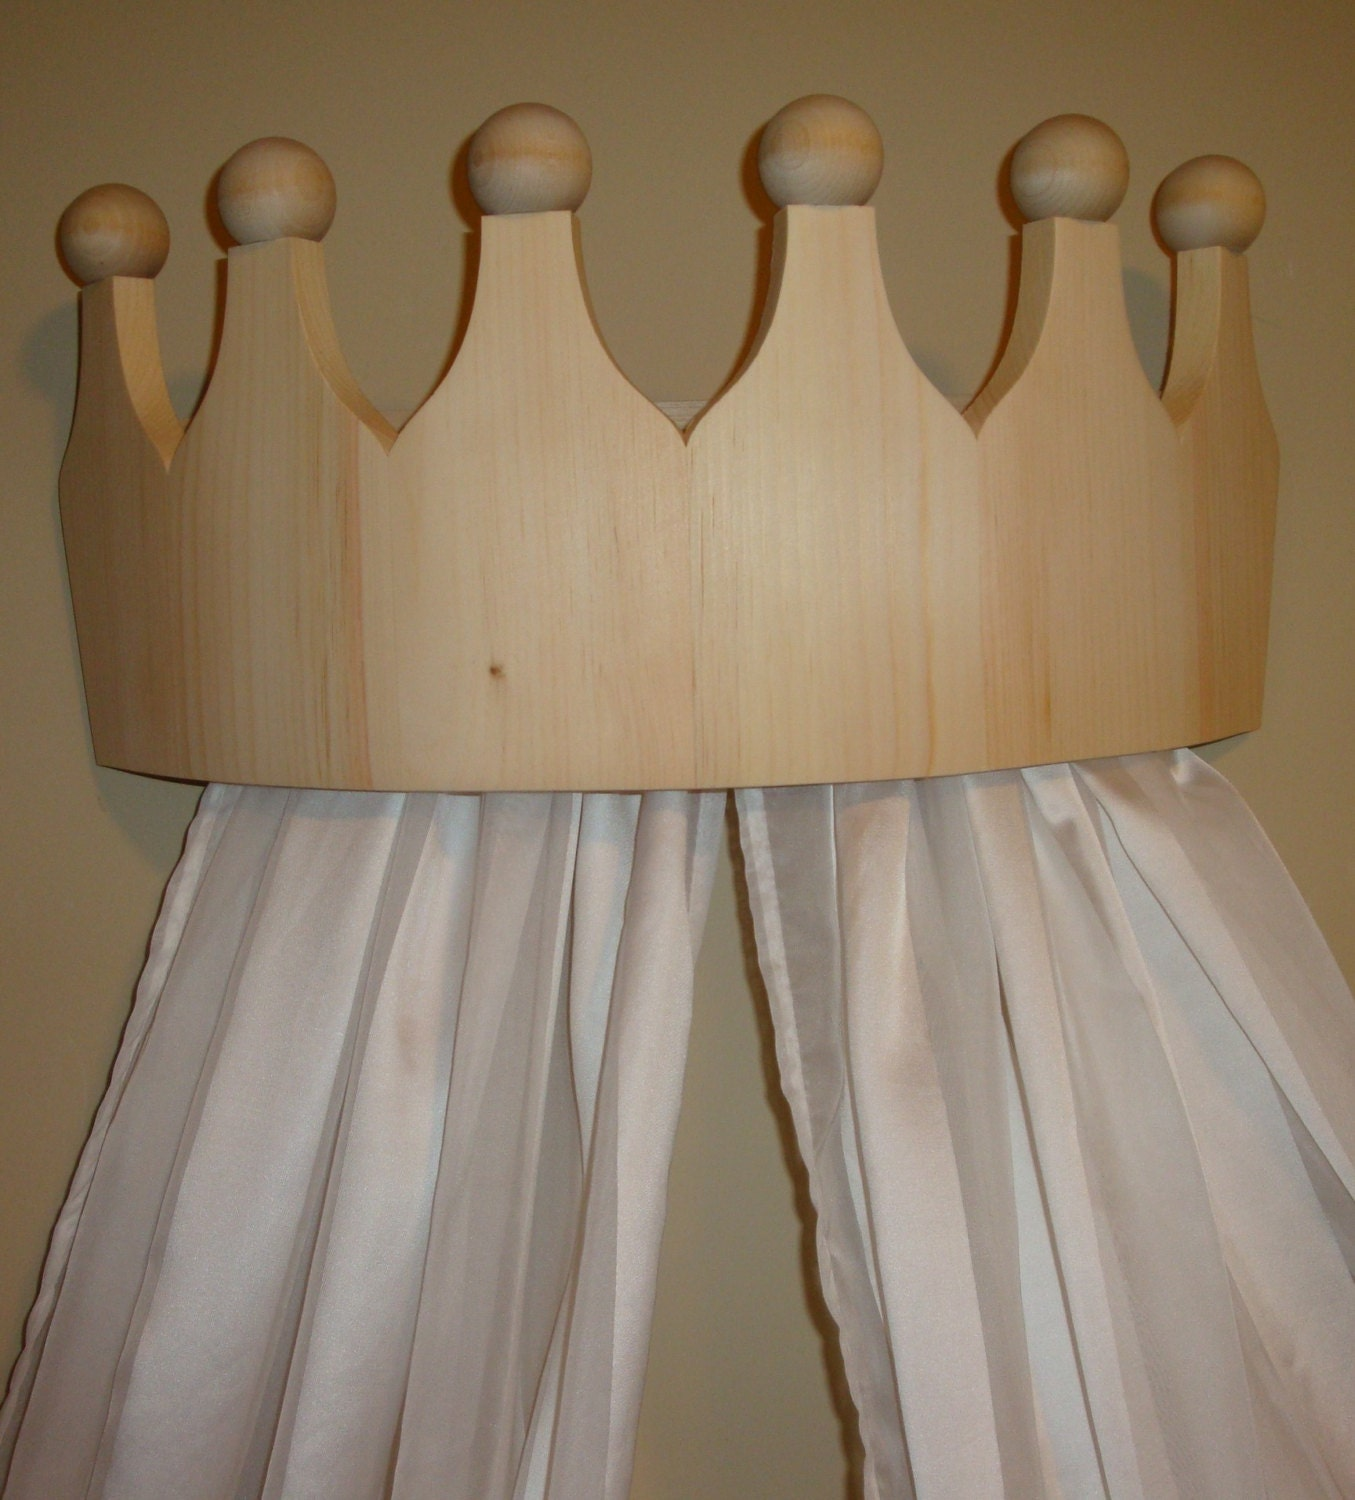 Princess Bed Canopy Girl Crown Pelmet Upholstered Awning: Princess Bed Crown Valance / Canopy / Cornice For Girls Room